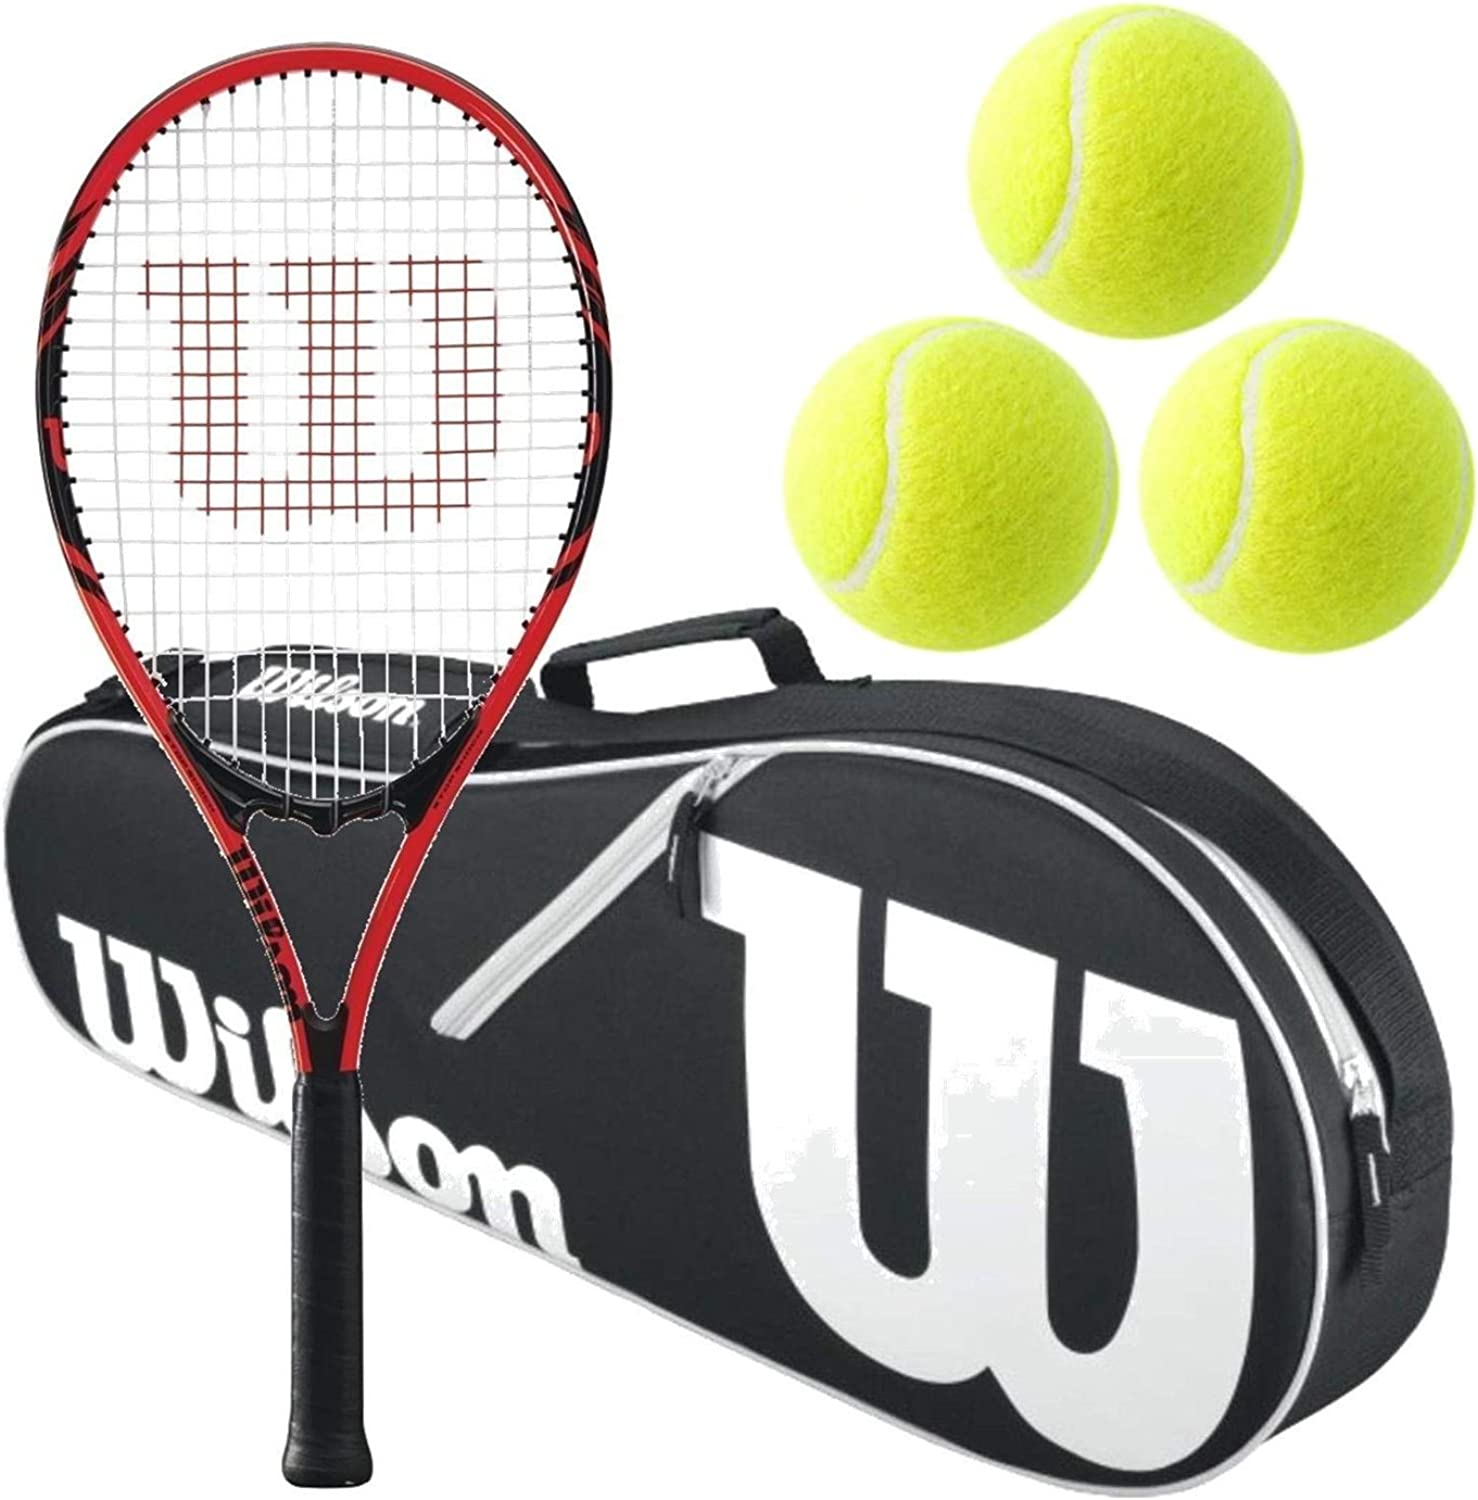 Wilson Federer Black Red Adult Pre-Strung Recreational Tennis Racquet (Oversize or Midplus) Starter Kit or Set Bundled with a Black White Advantage II Tennis Racket Bag and (1) Can of 3 Tennis Balls